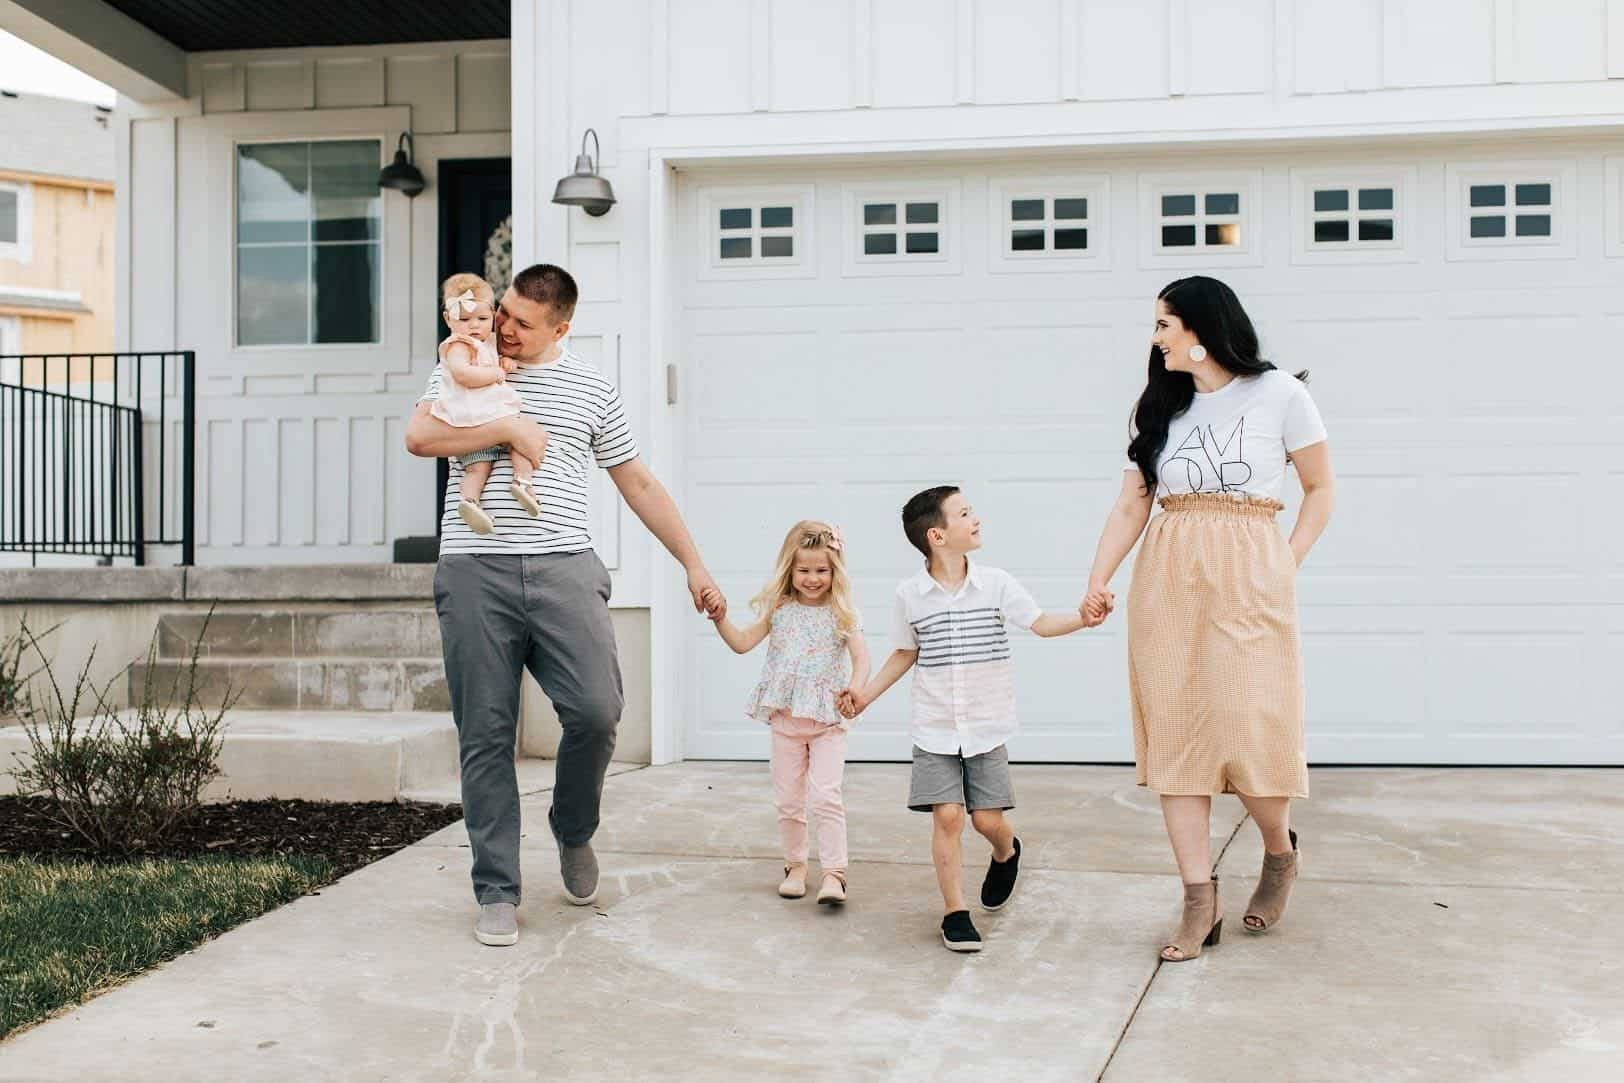 Family walks down driveway during summer family photos.